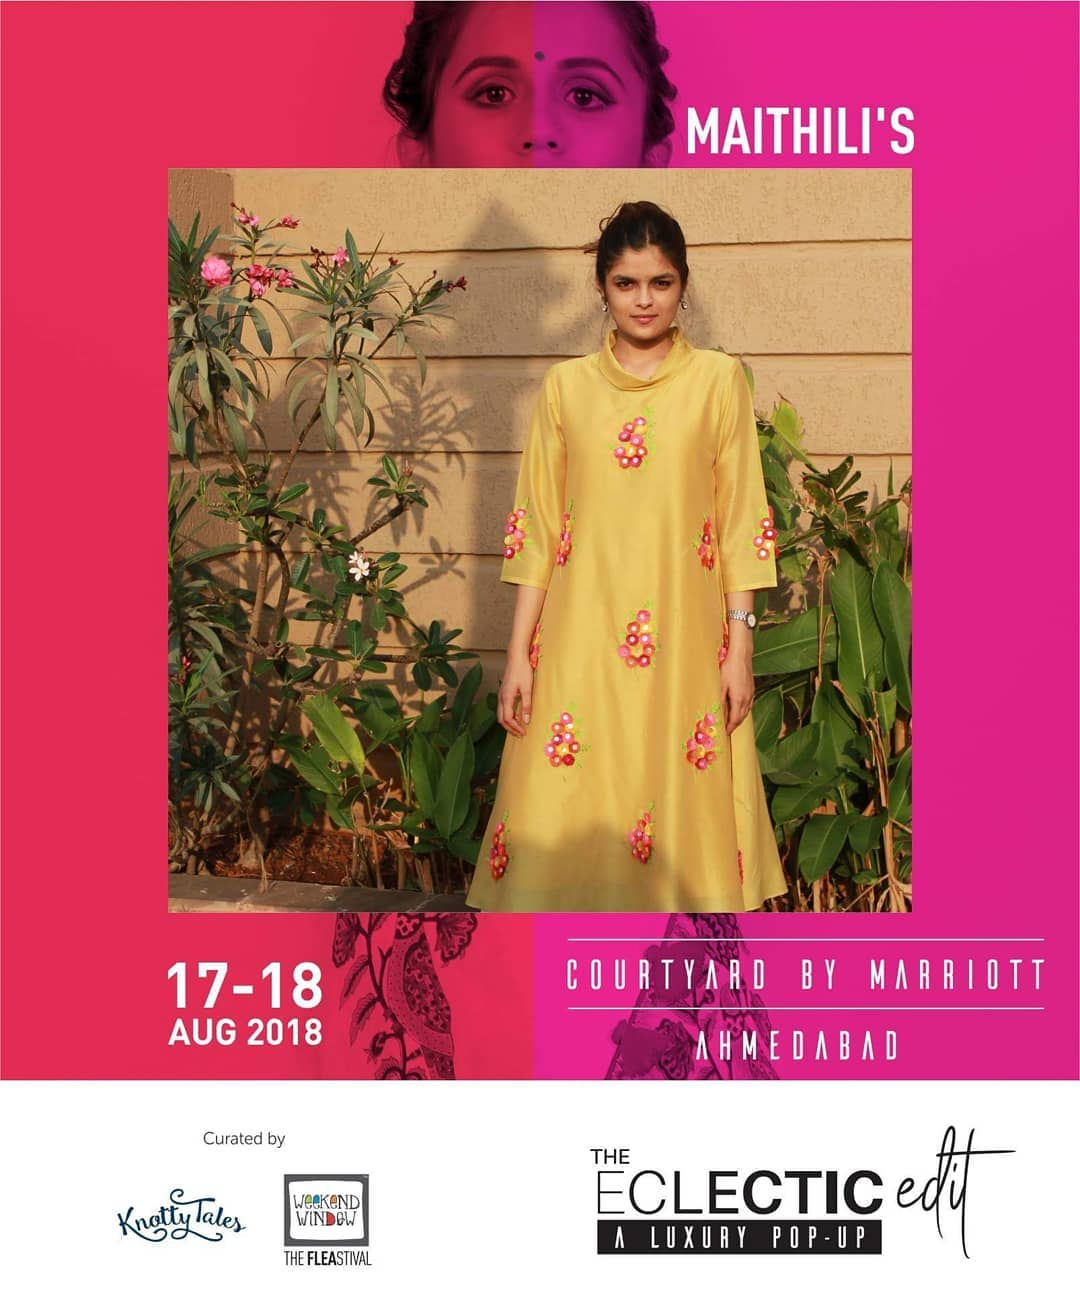 @mai.go.label is a textile and fashion label which celebrates Indian Textiles. They specialise in Luxury Daily Wear for comfort for Indian Woman. Fashion junkies would value consistent with the ecosystem of their fashion label.  65+ designers showcasing at The Eclectic Edit curated by @knottytales_kt & @weekendwindow .  #makeinindia #handblockprint #handmade #sustainable #upcycle #instafashion #indiantextile #textile #modernisingindiantextile #luxurydailywear #theeclecticedit #knottytales #weekendwindow #luxury #popup #festive